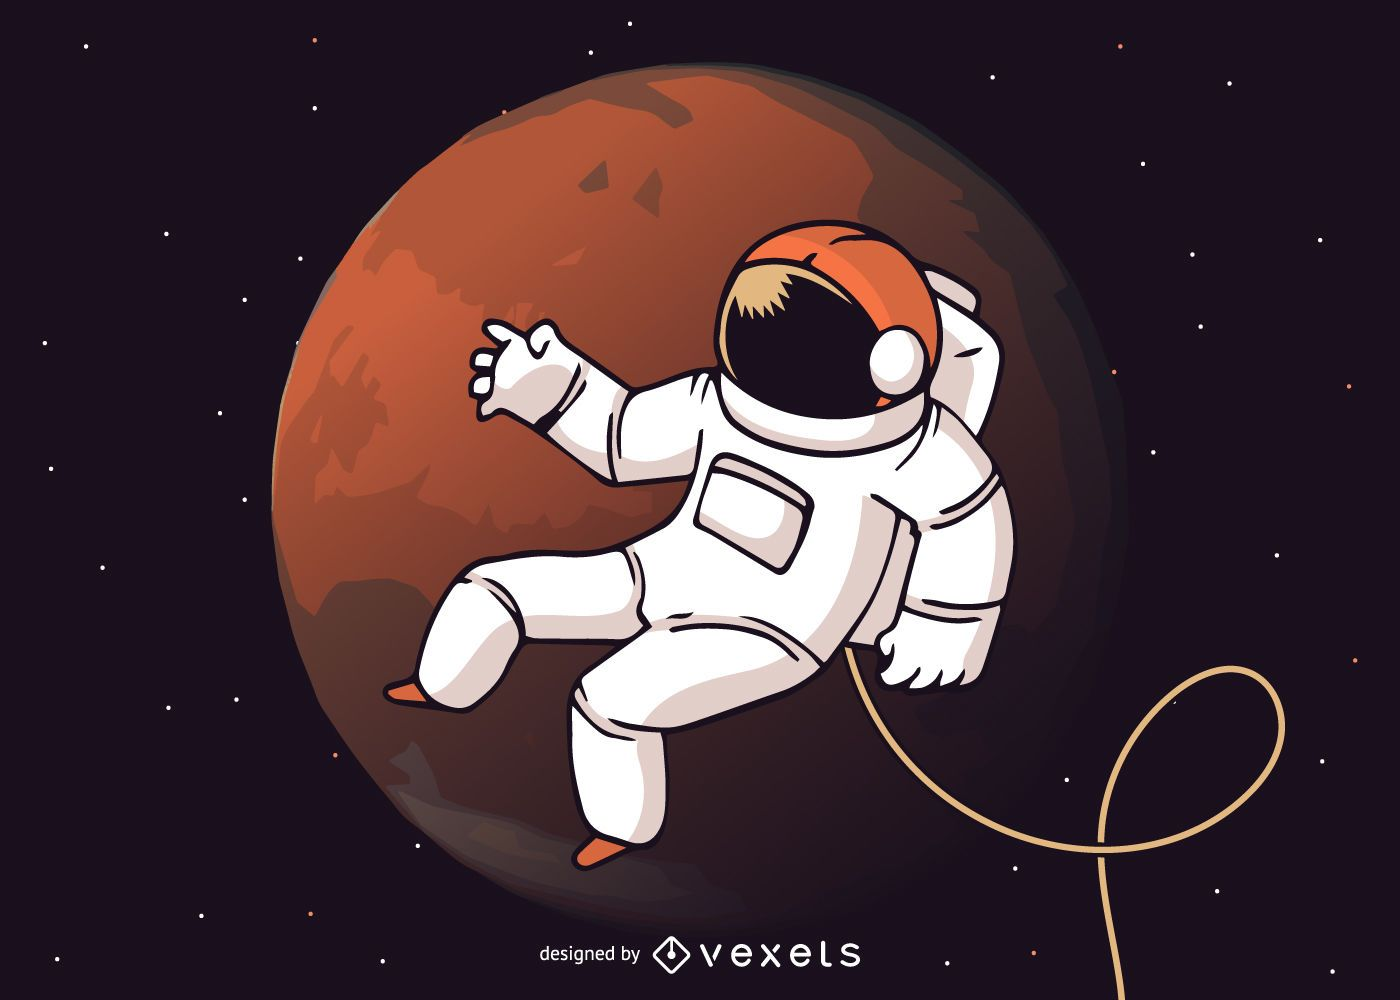 astronaut floating in space cartoon - photo #16